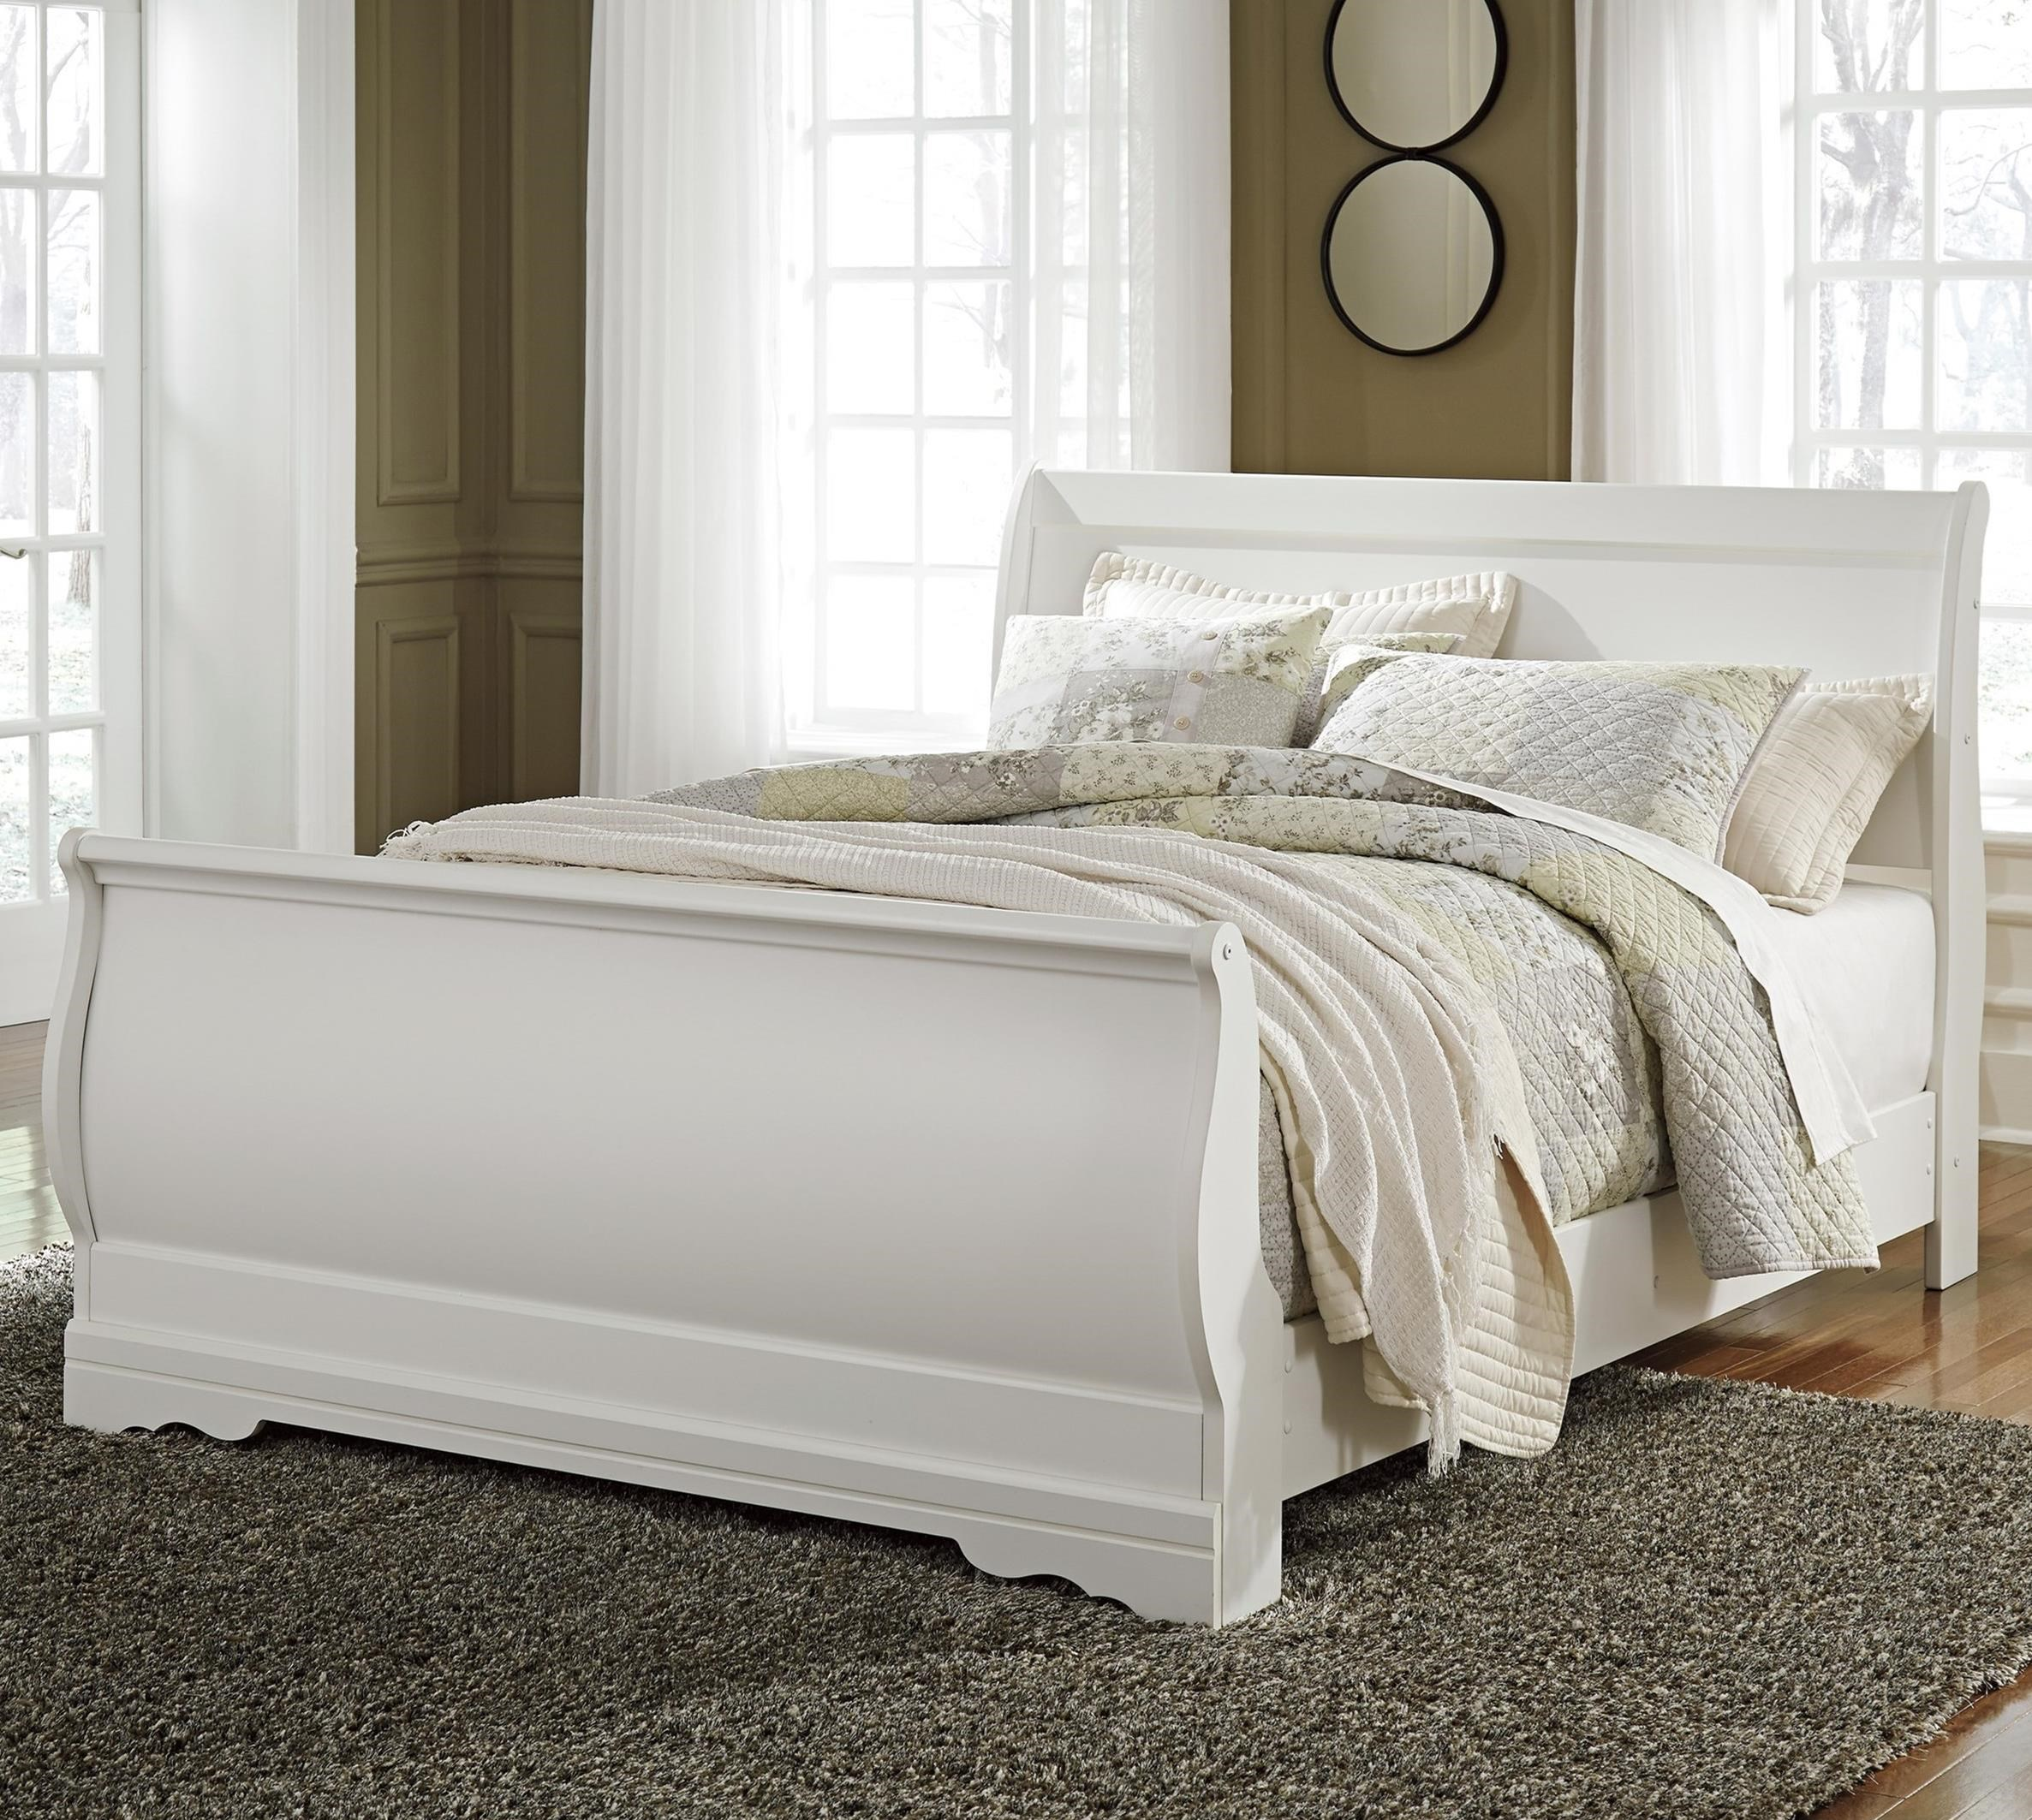 Anarasia Queen Sleigh Bed by Signature Design by Ashley at Zak's Warehouse Clearance Center